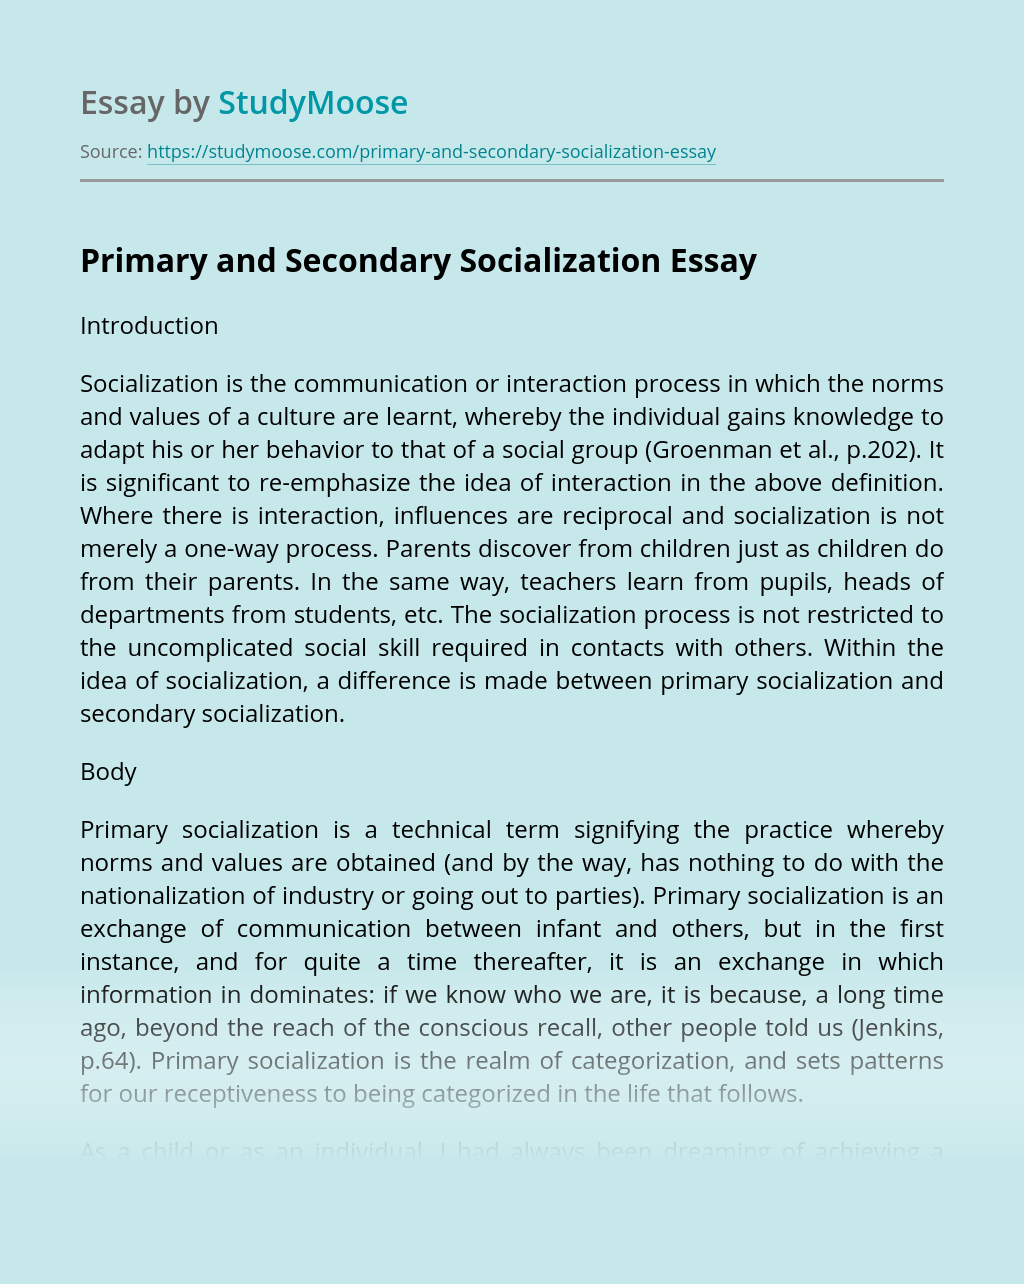 Primary and Secondary Socialization